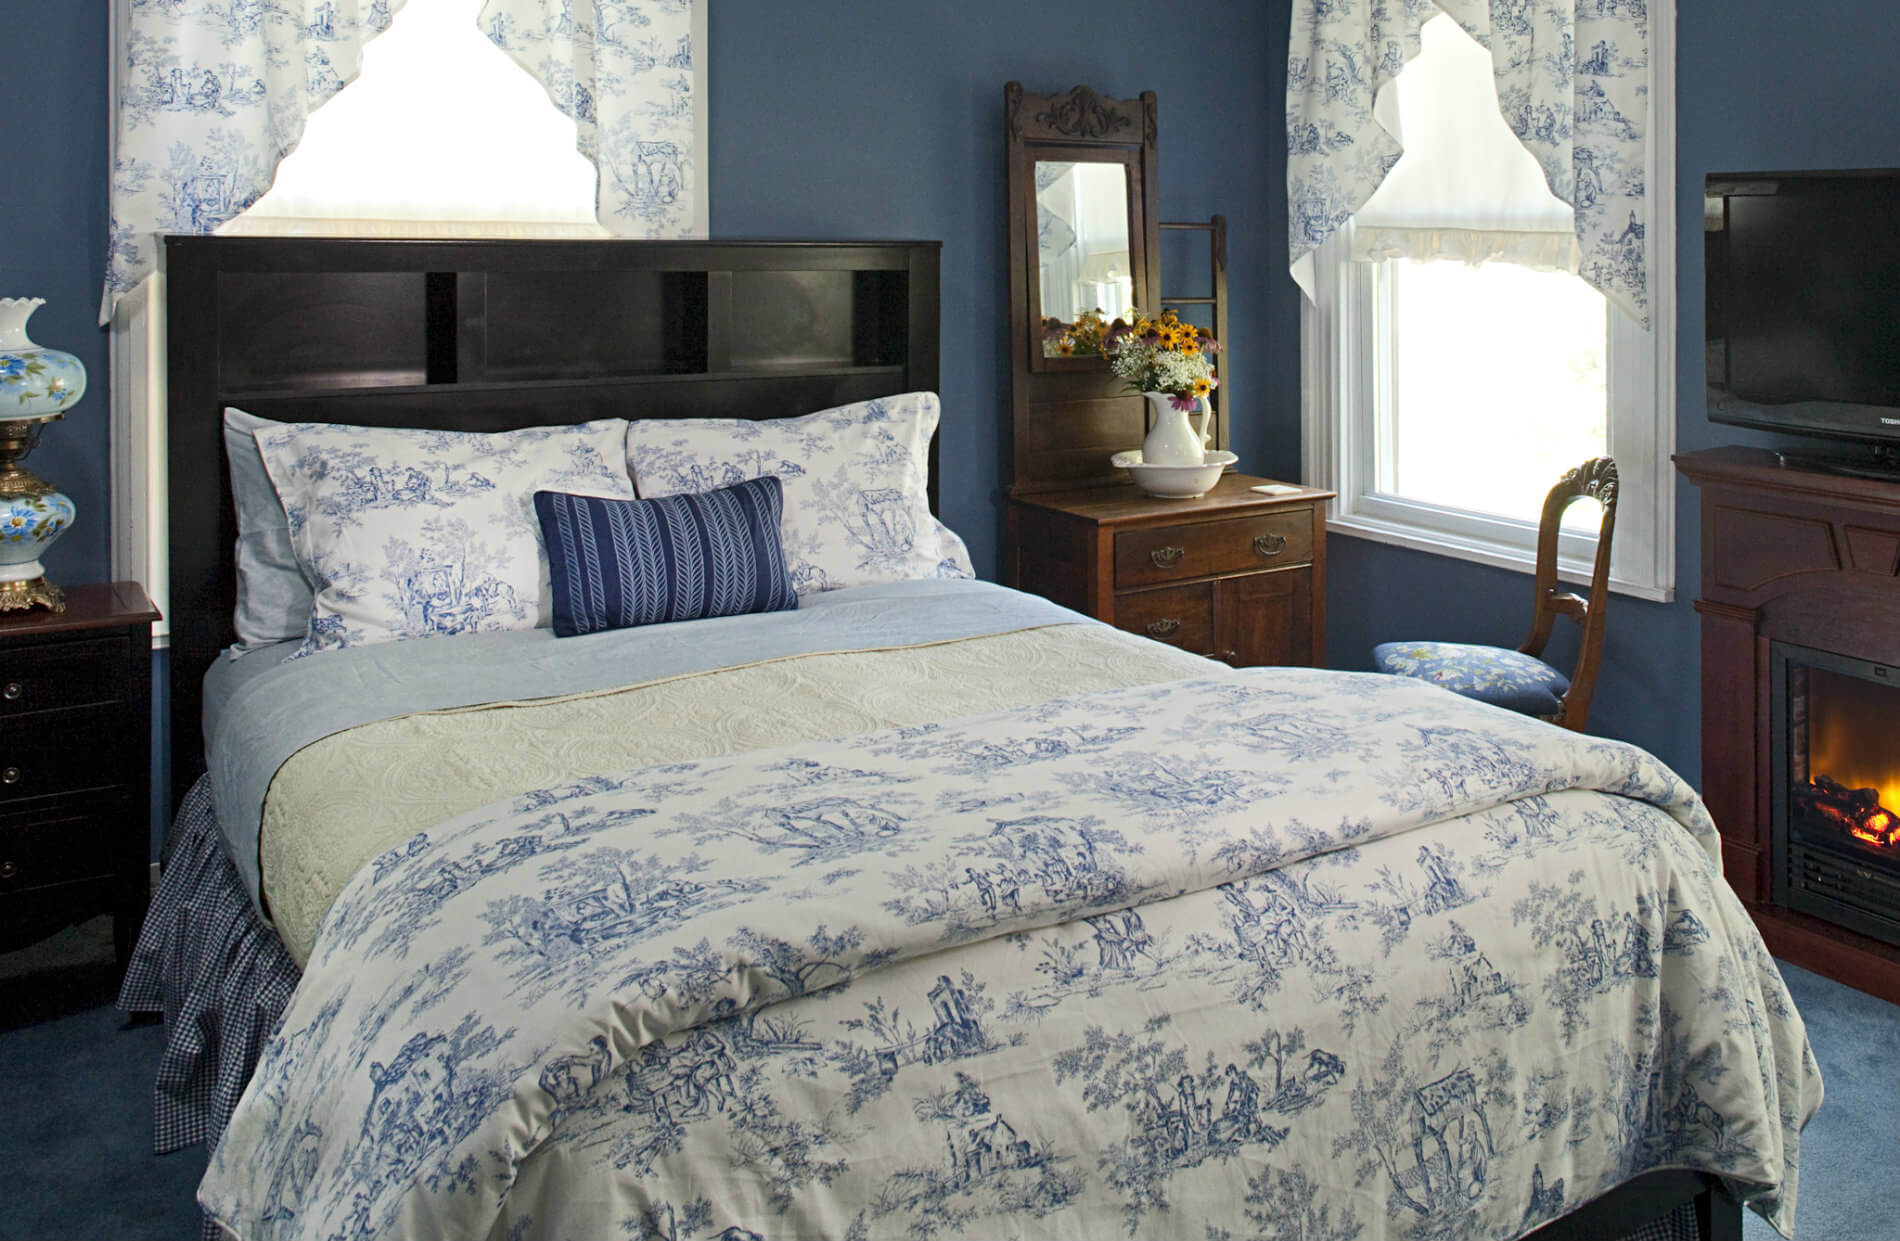 lue room with white curtains and large bed with white and blue bedding